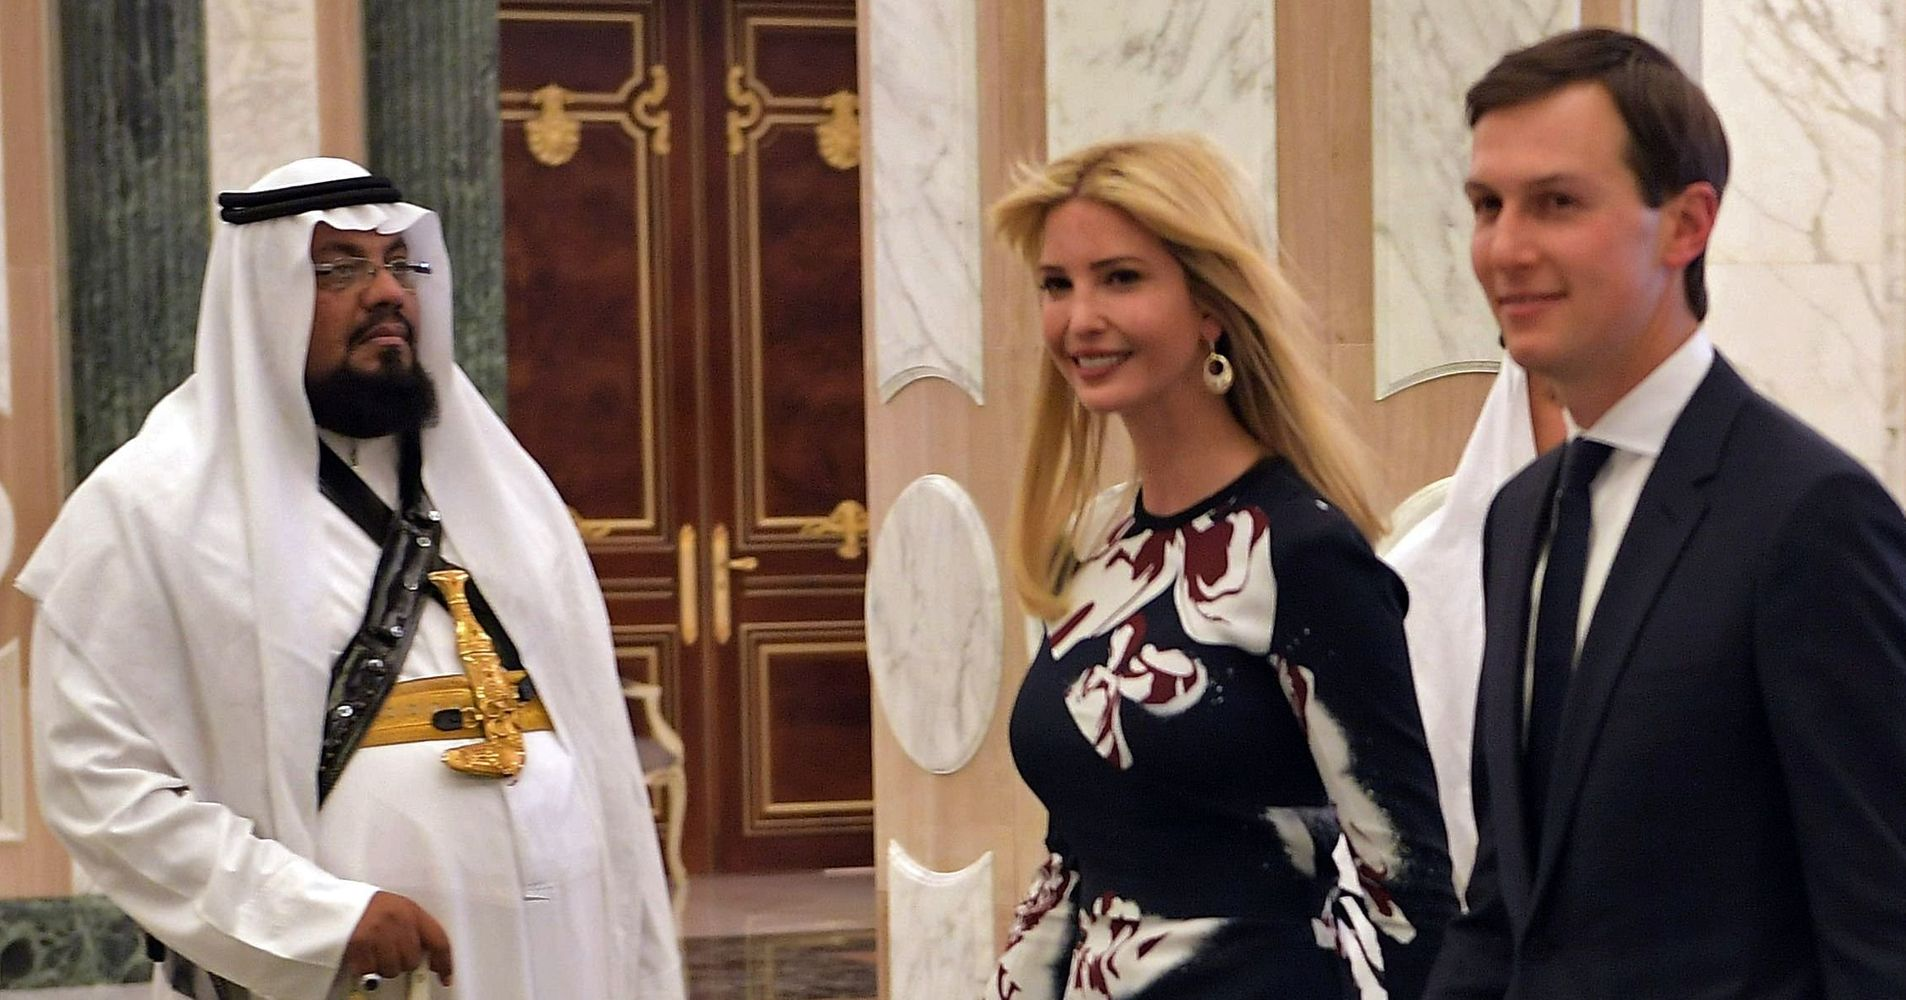 Saudi Arabia, UAE Donate $100 Million To Women's Fund Proposed By Ivanka  Trump | HuffPost